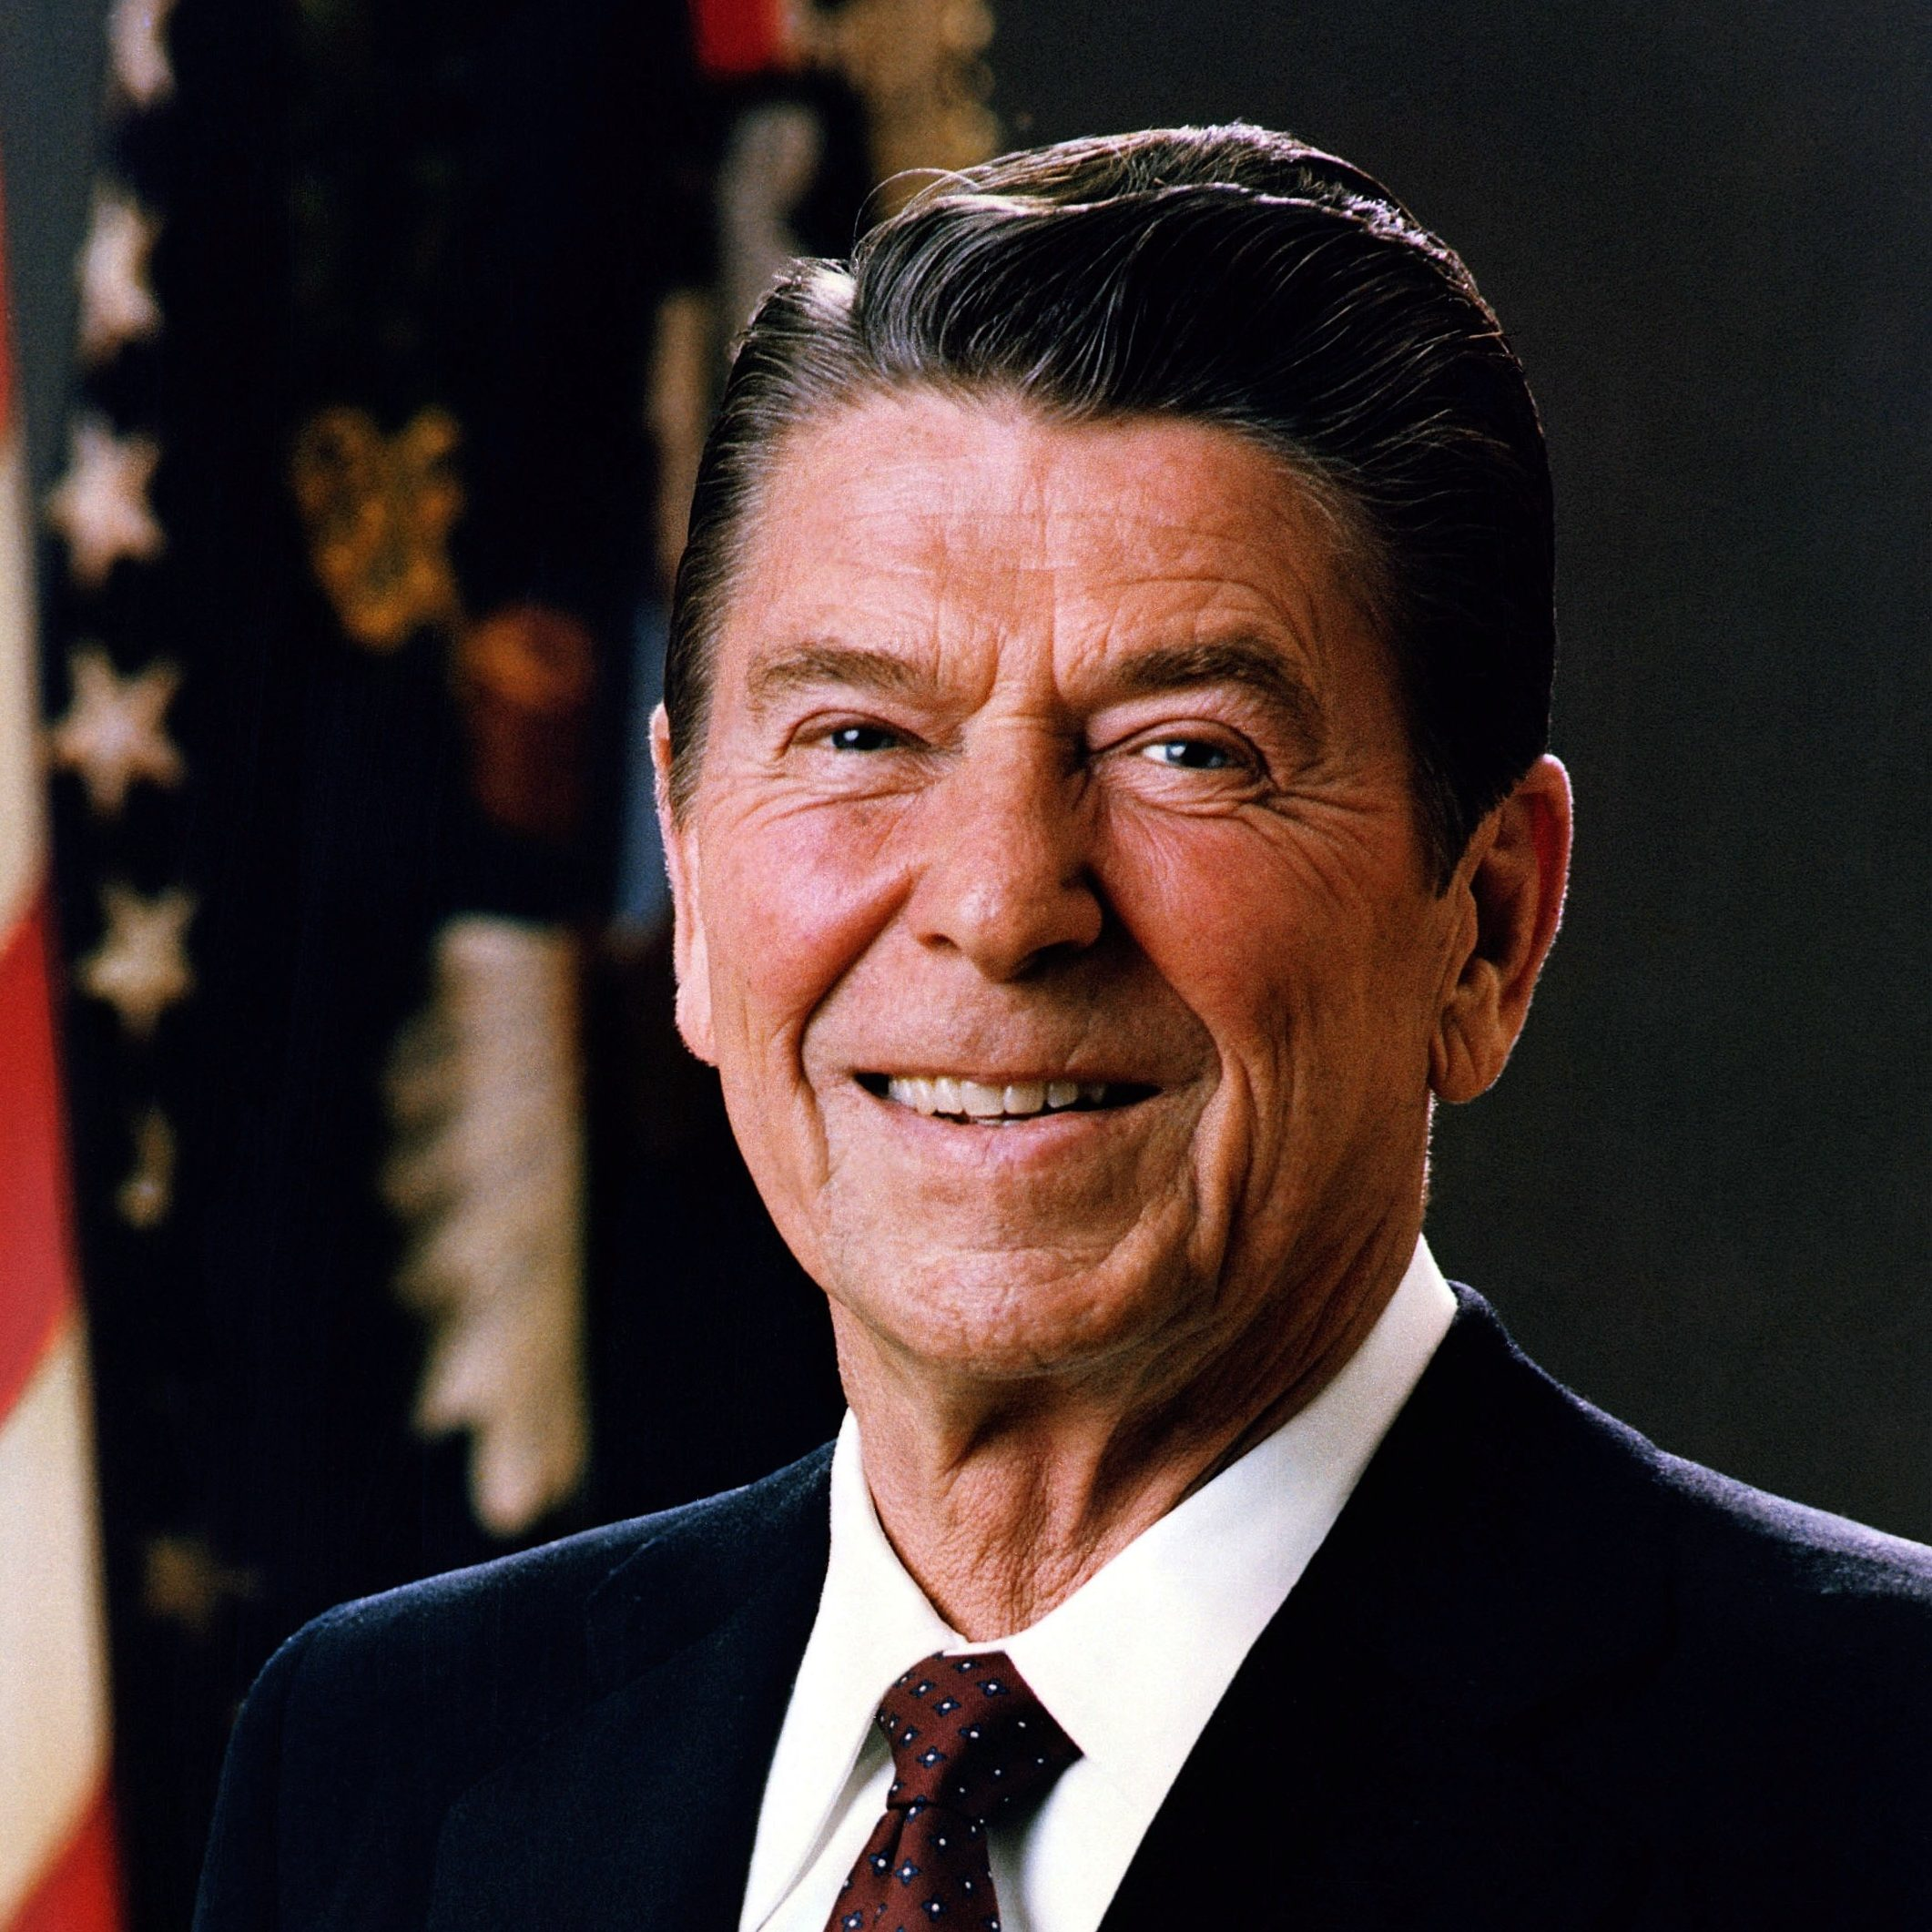 Official Portrait of President Reagan 1981 e1600167304744 20 Presidential Facts You Didn't Know About Air Force One